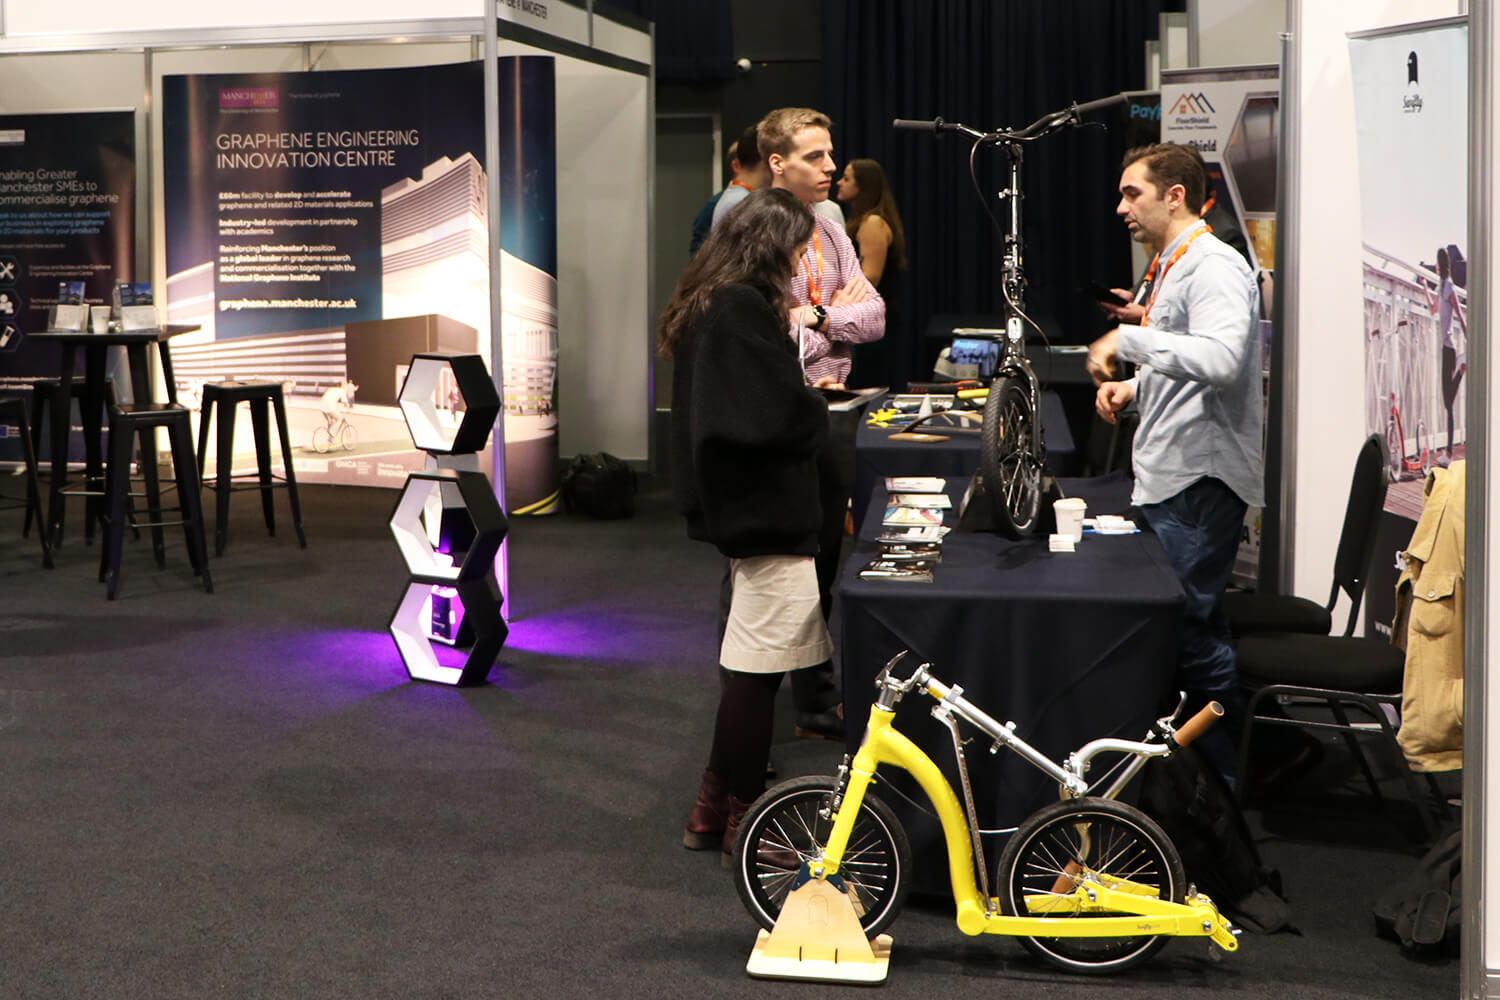 graphene scooter, push scooter for adults, folding adult kick scooter